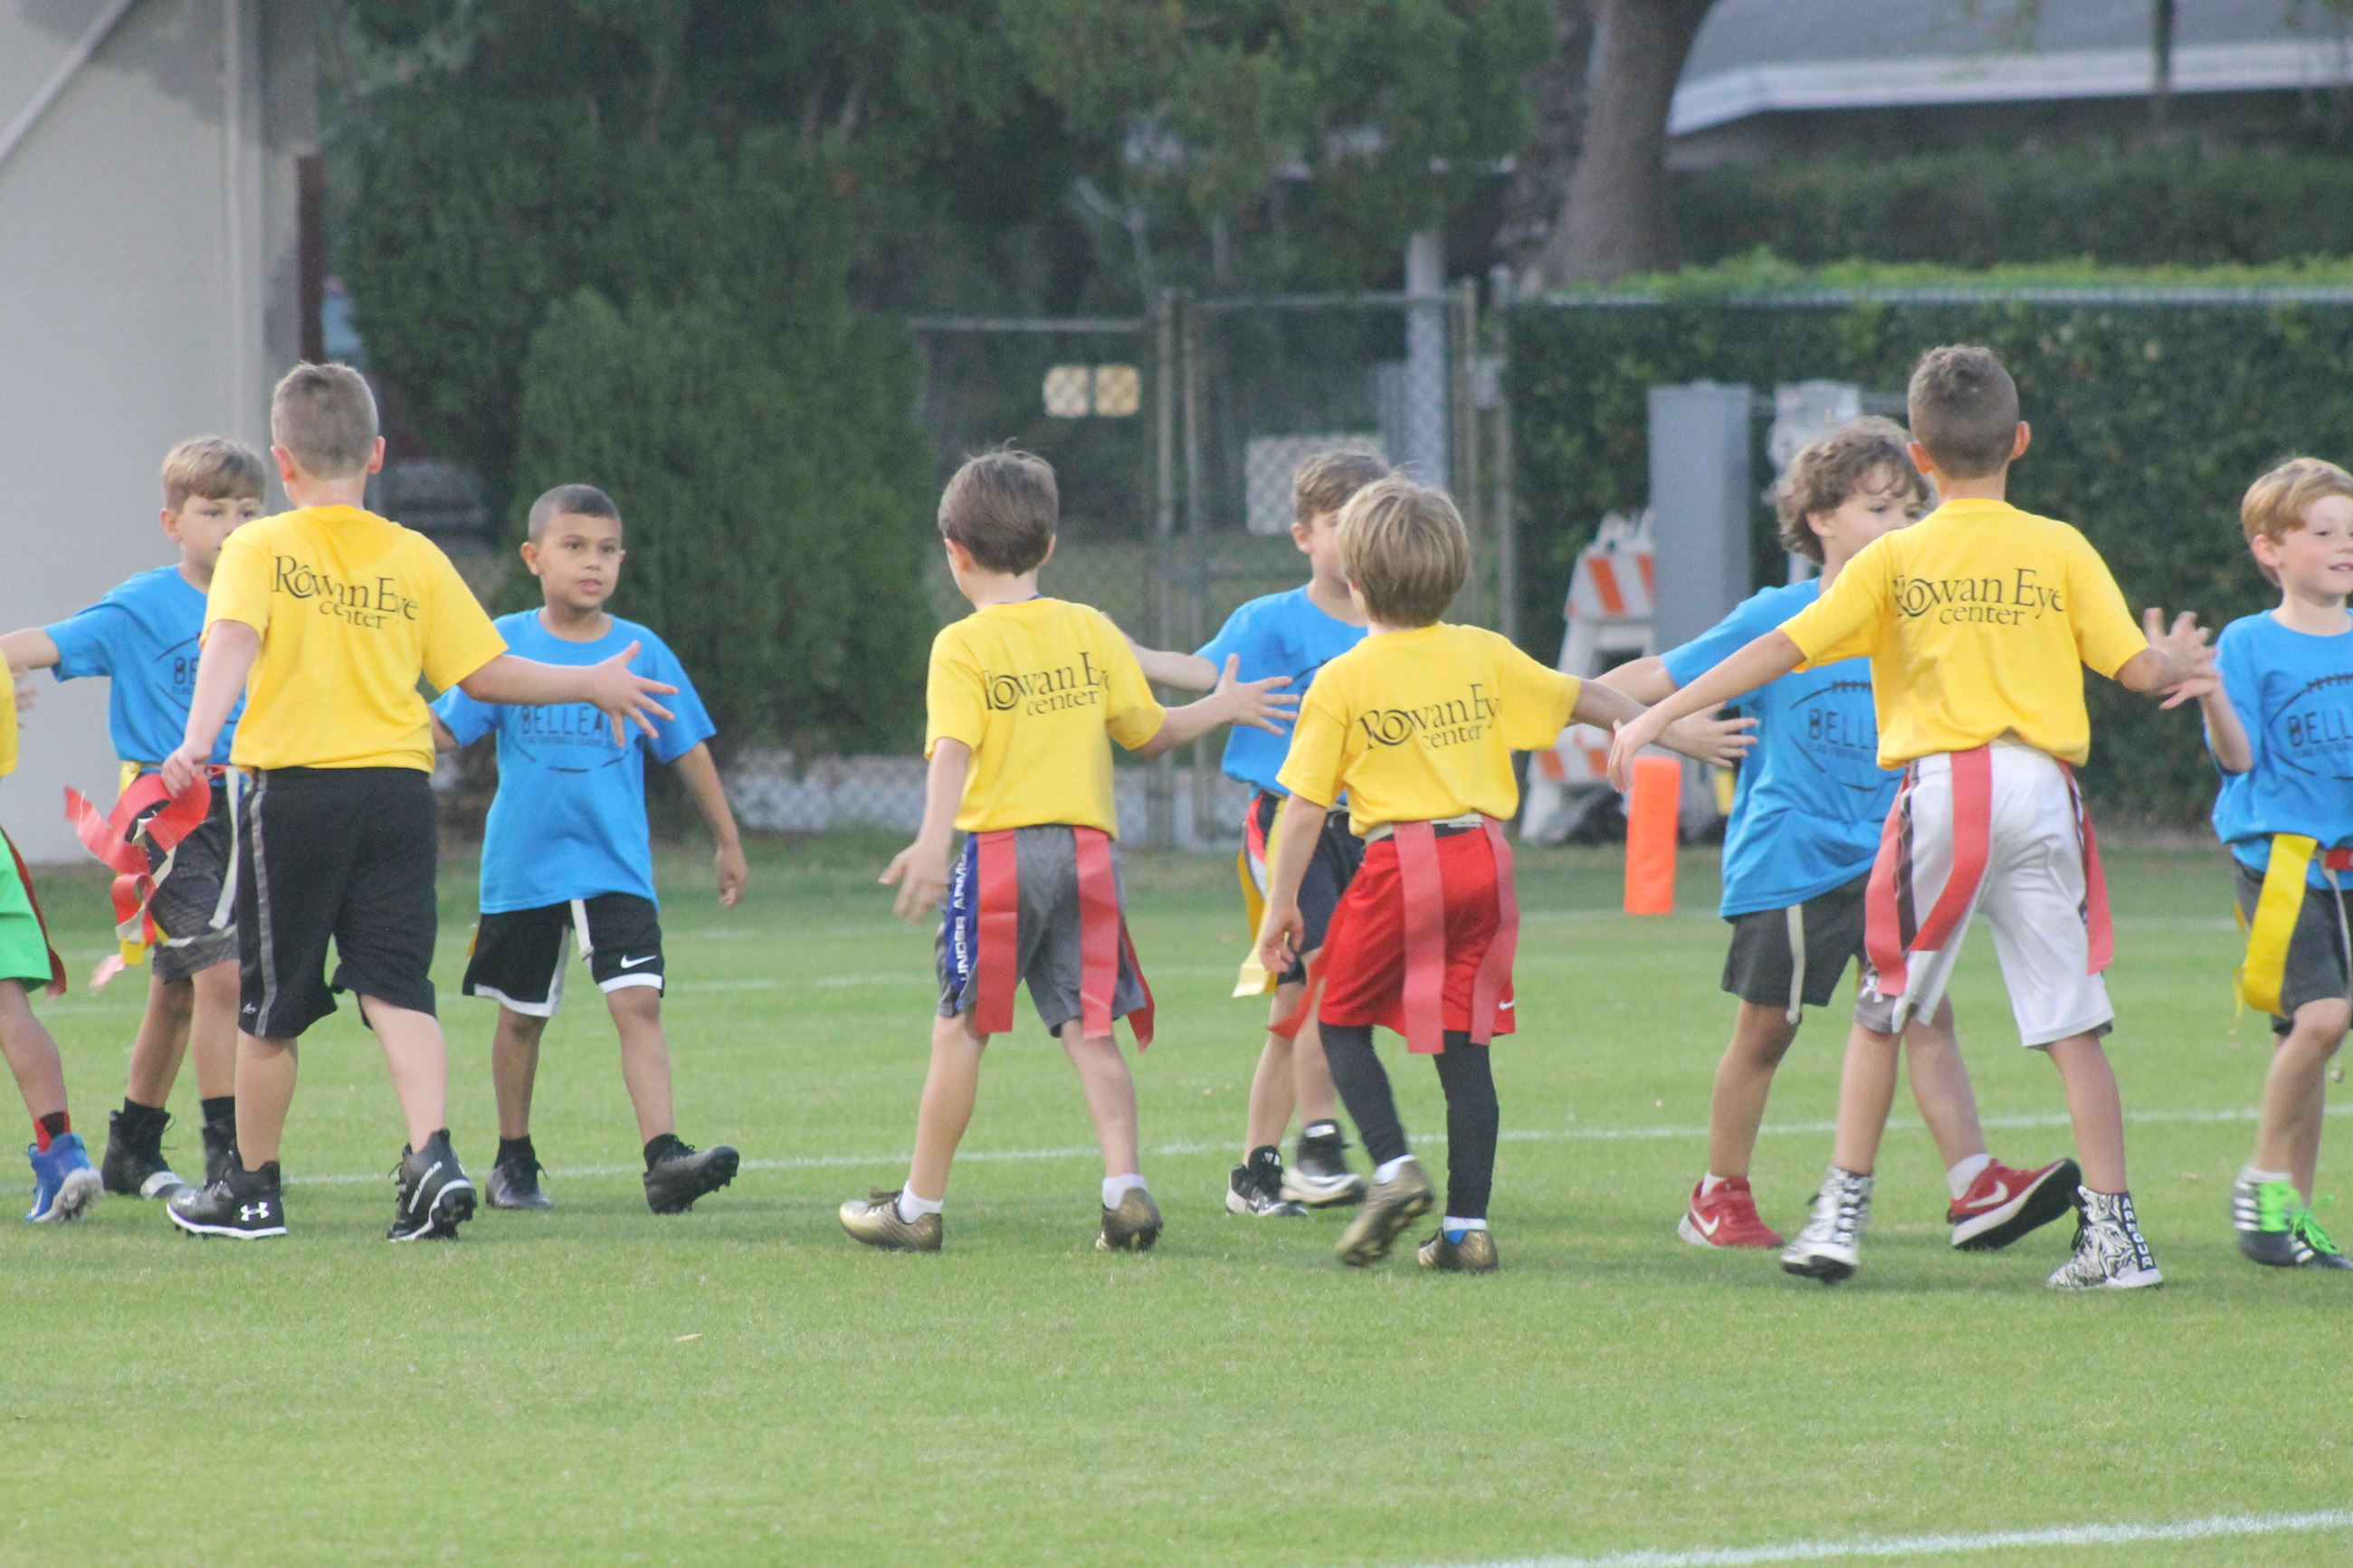 Children on a field are lined up, high fiving after a flag football game